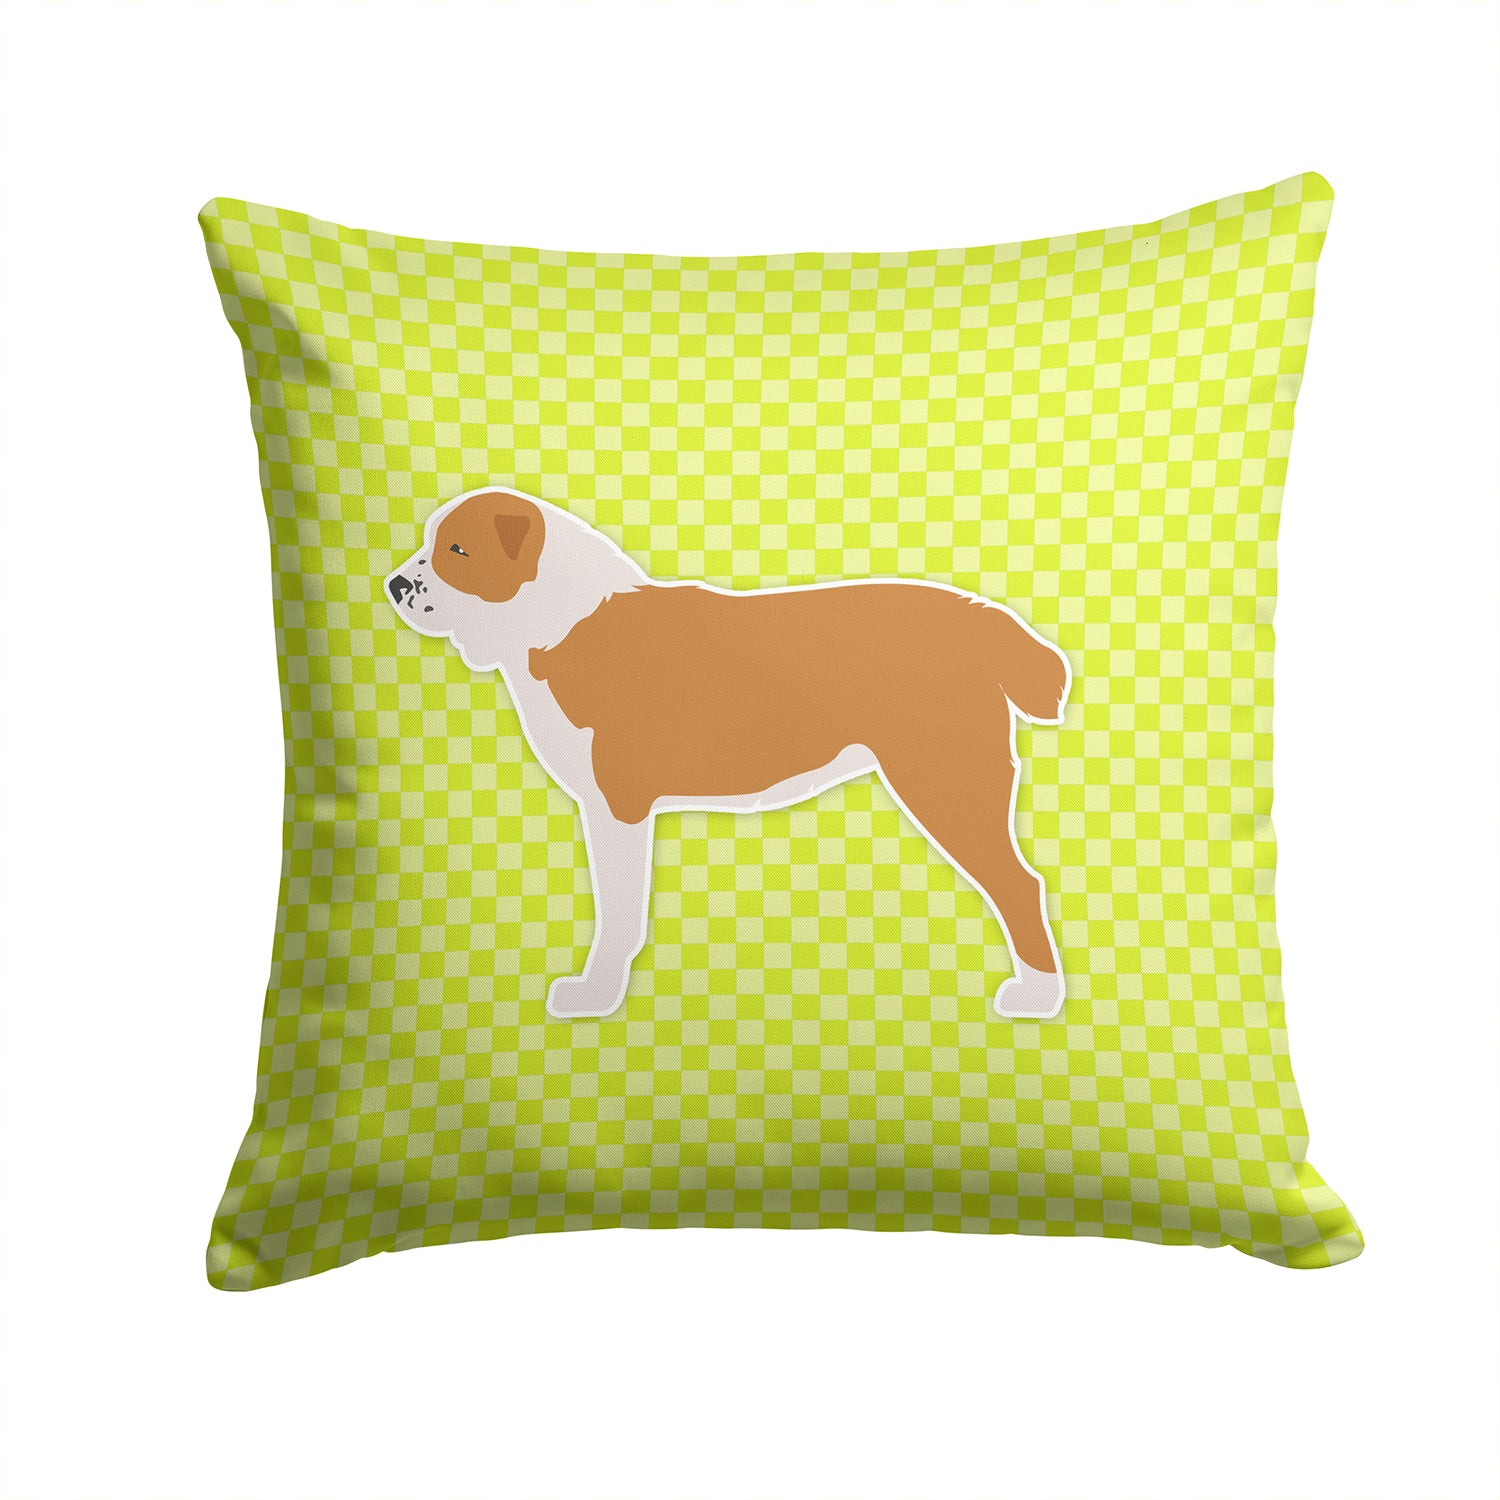 Central Asian Shepherd Dog Checkerboard Green Fabric Decorative Pillow BB3828PW1414 by Caroline's Treasures